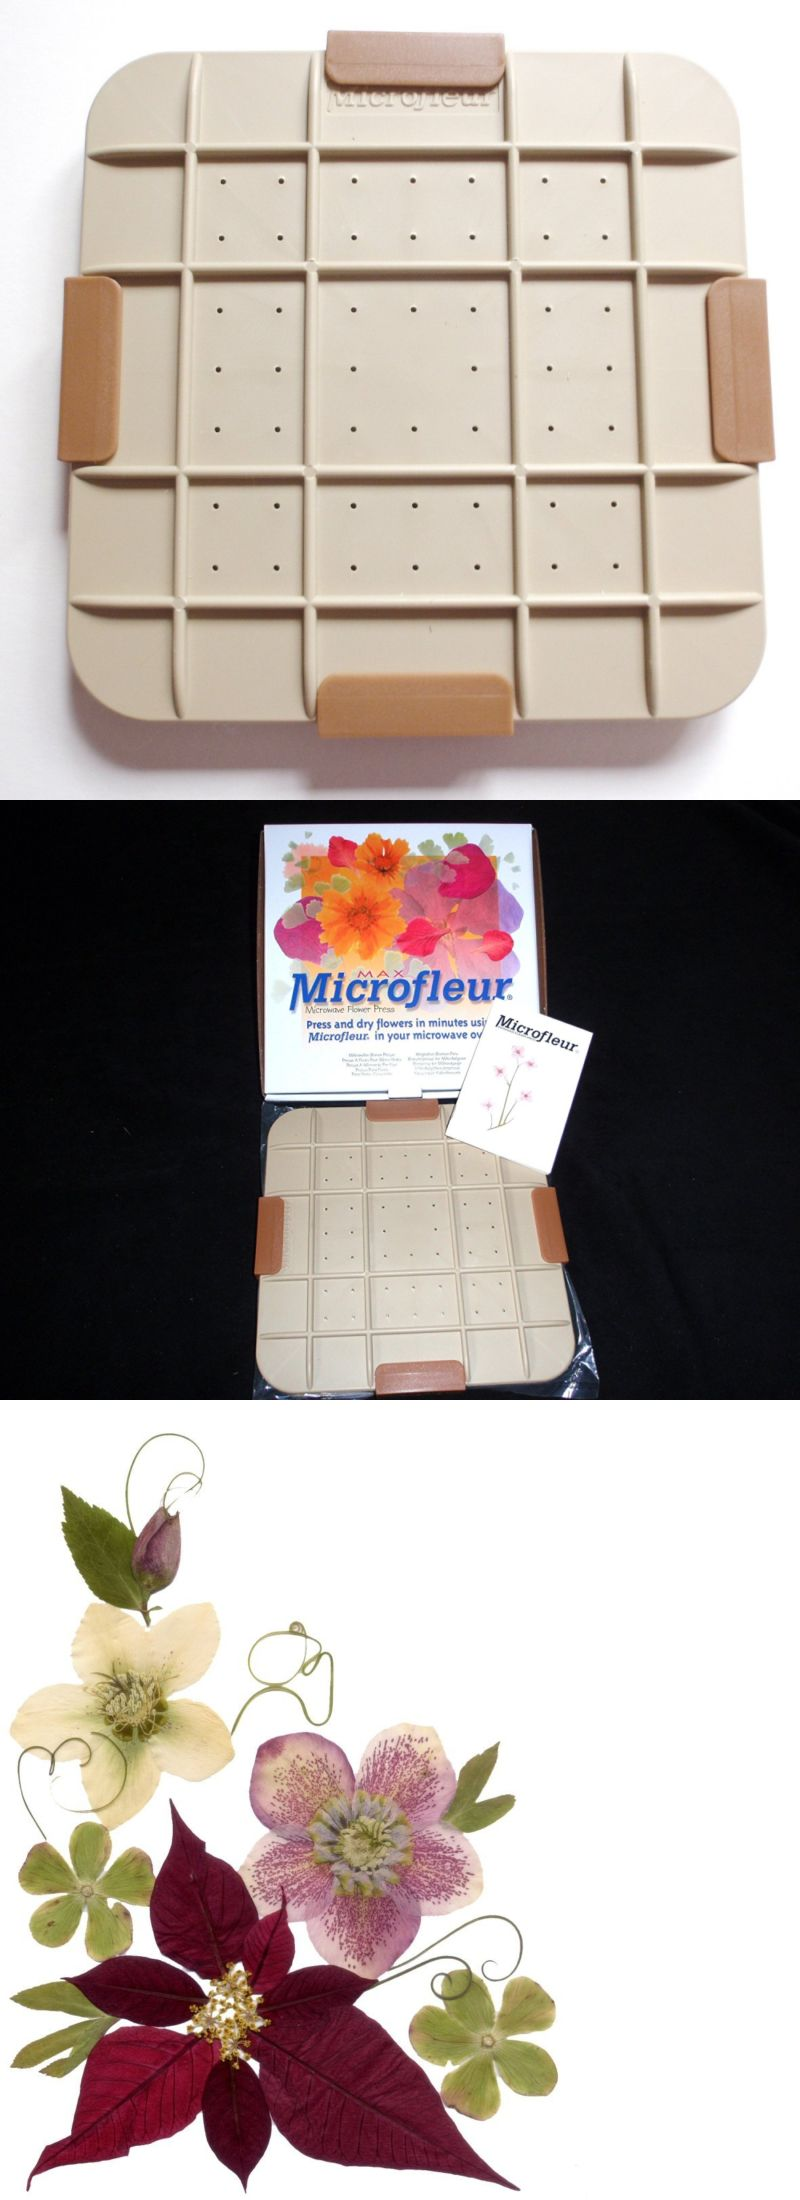 Dried Flowers 16493: Microfleur 9 (23 Cm) Microwave Max Flower Press -> BUY IT NOW ONLY: $66.69 on eBay!